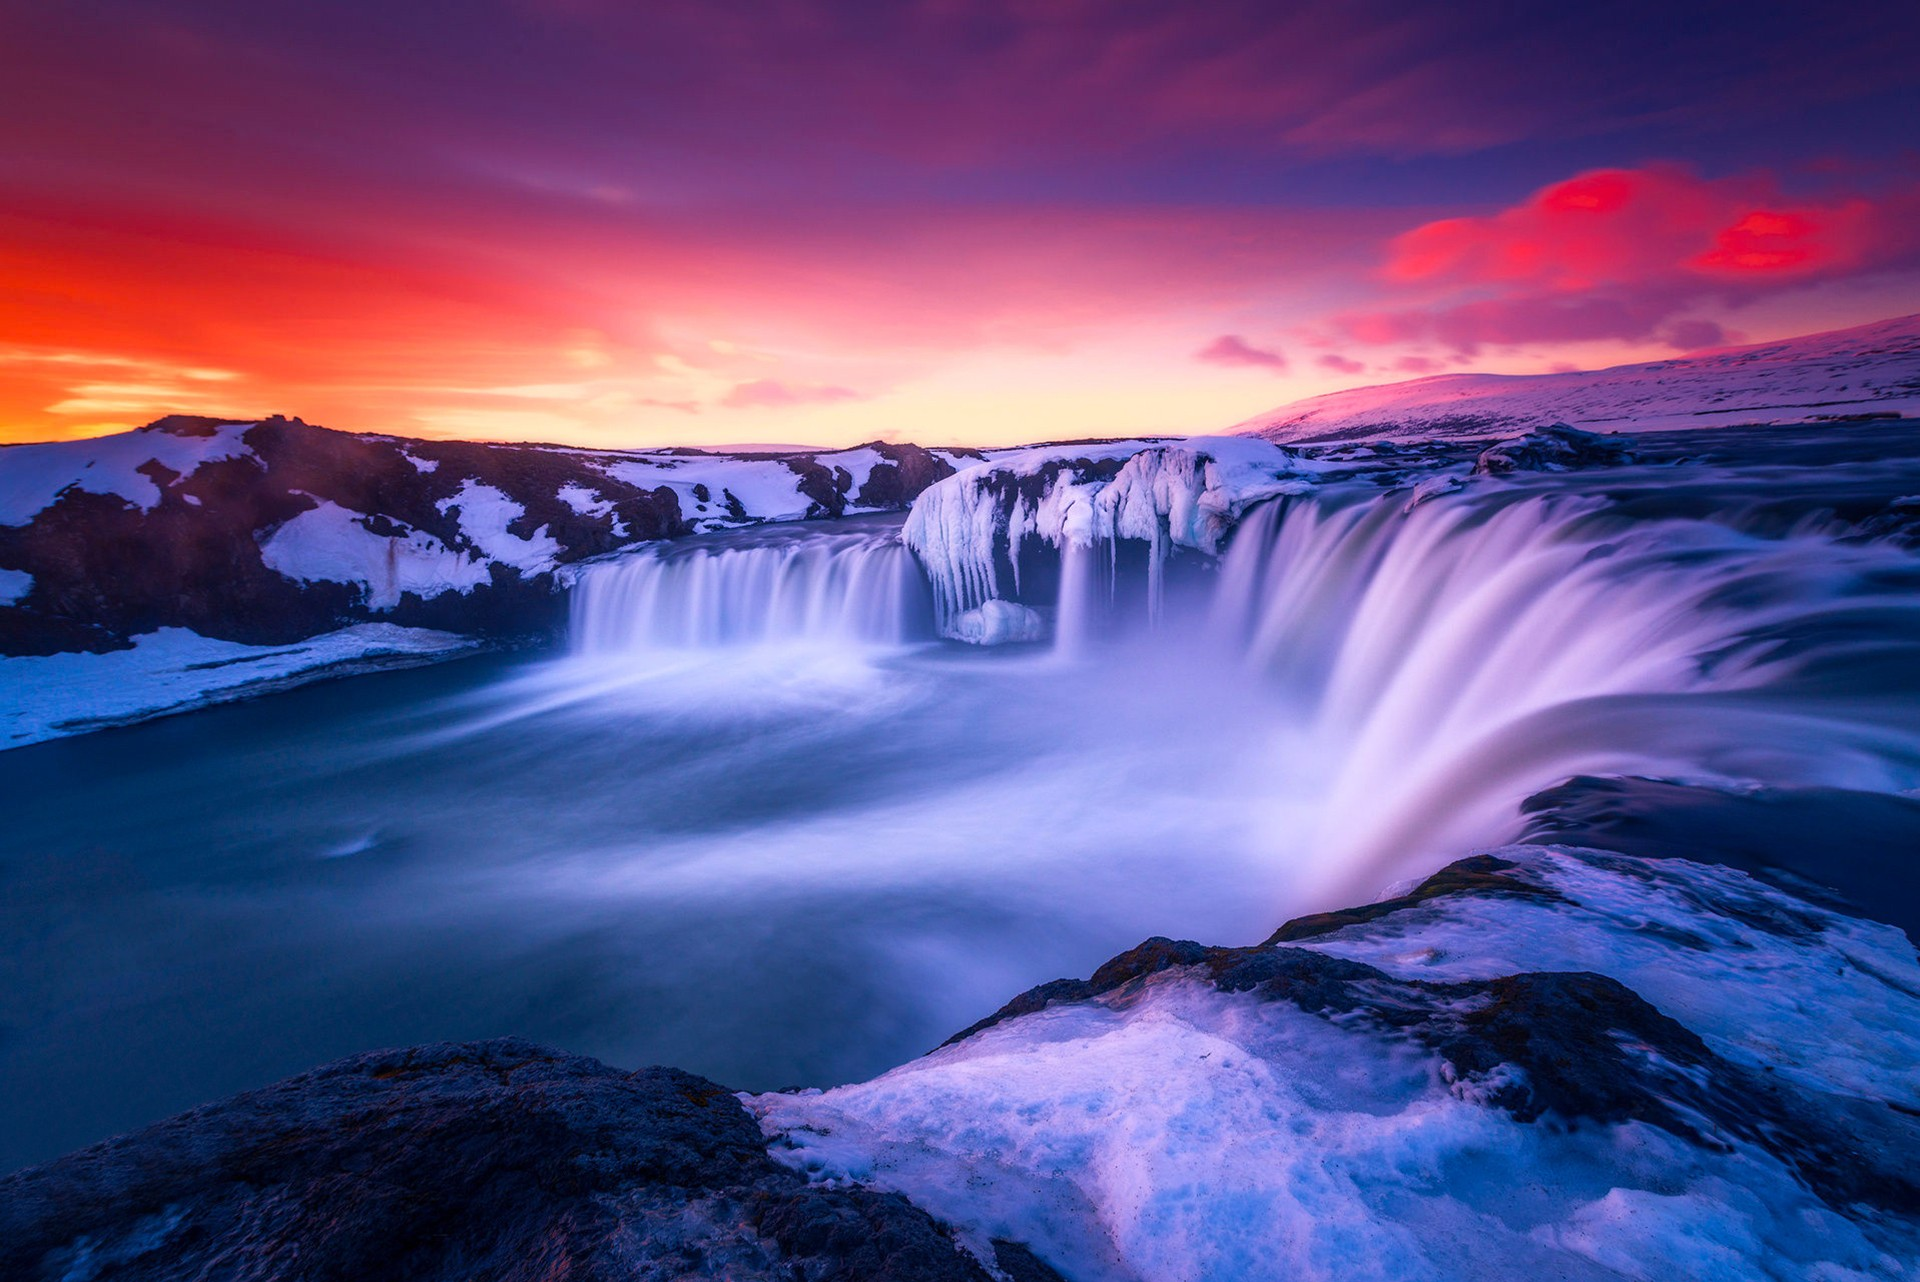 Frozen Waterfall In Iceland Fondo De Pantalla Hd Fondo De